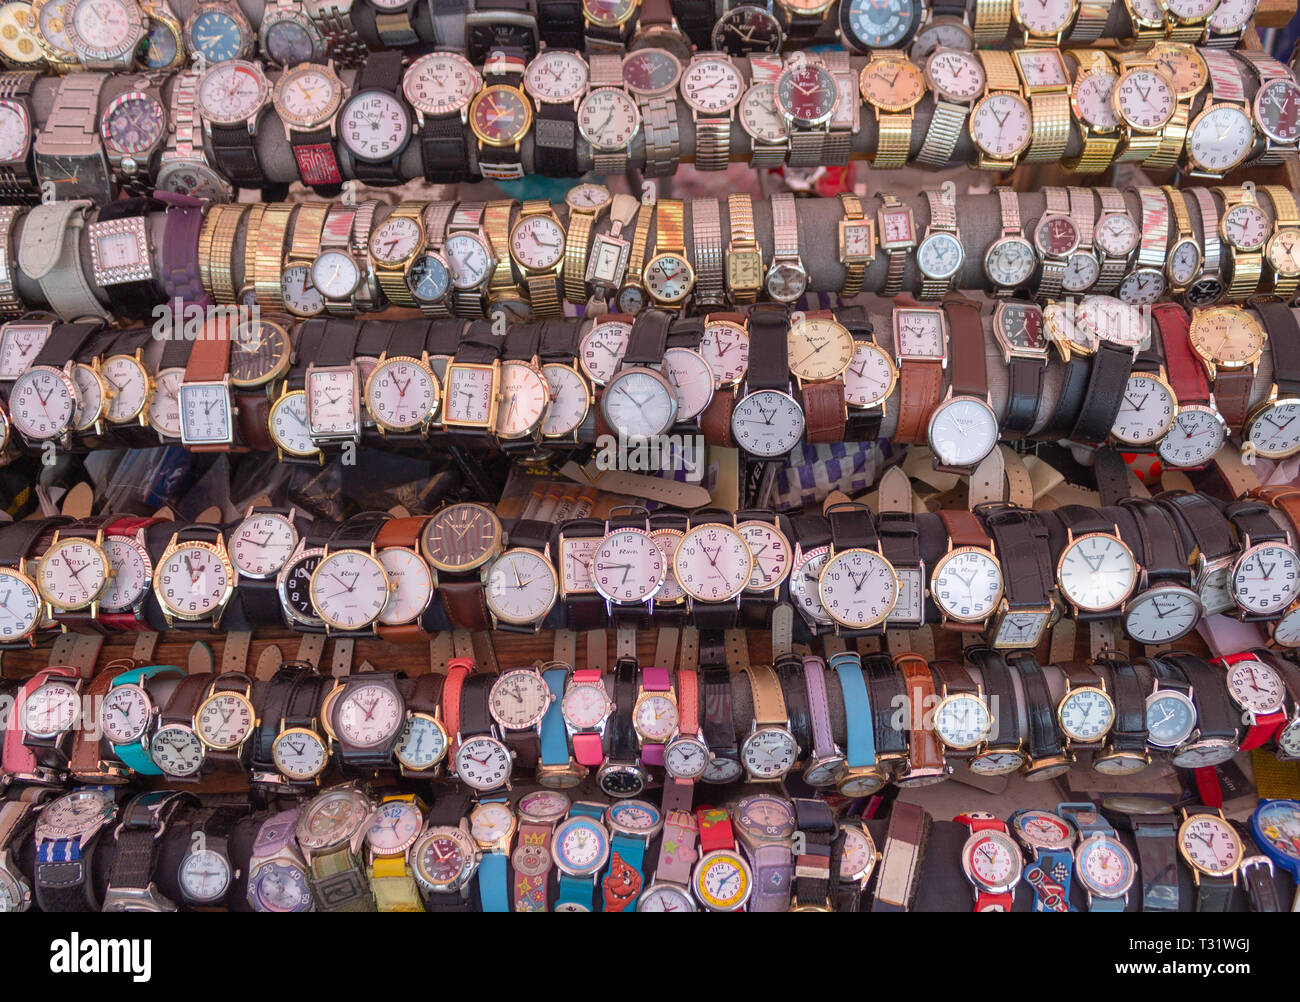 Display of wrist watches for sale. - Stock Image